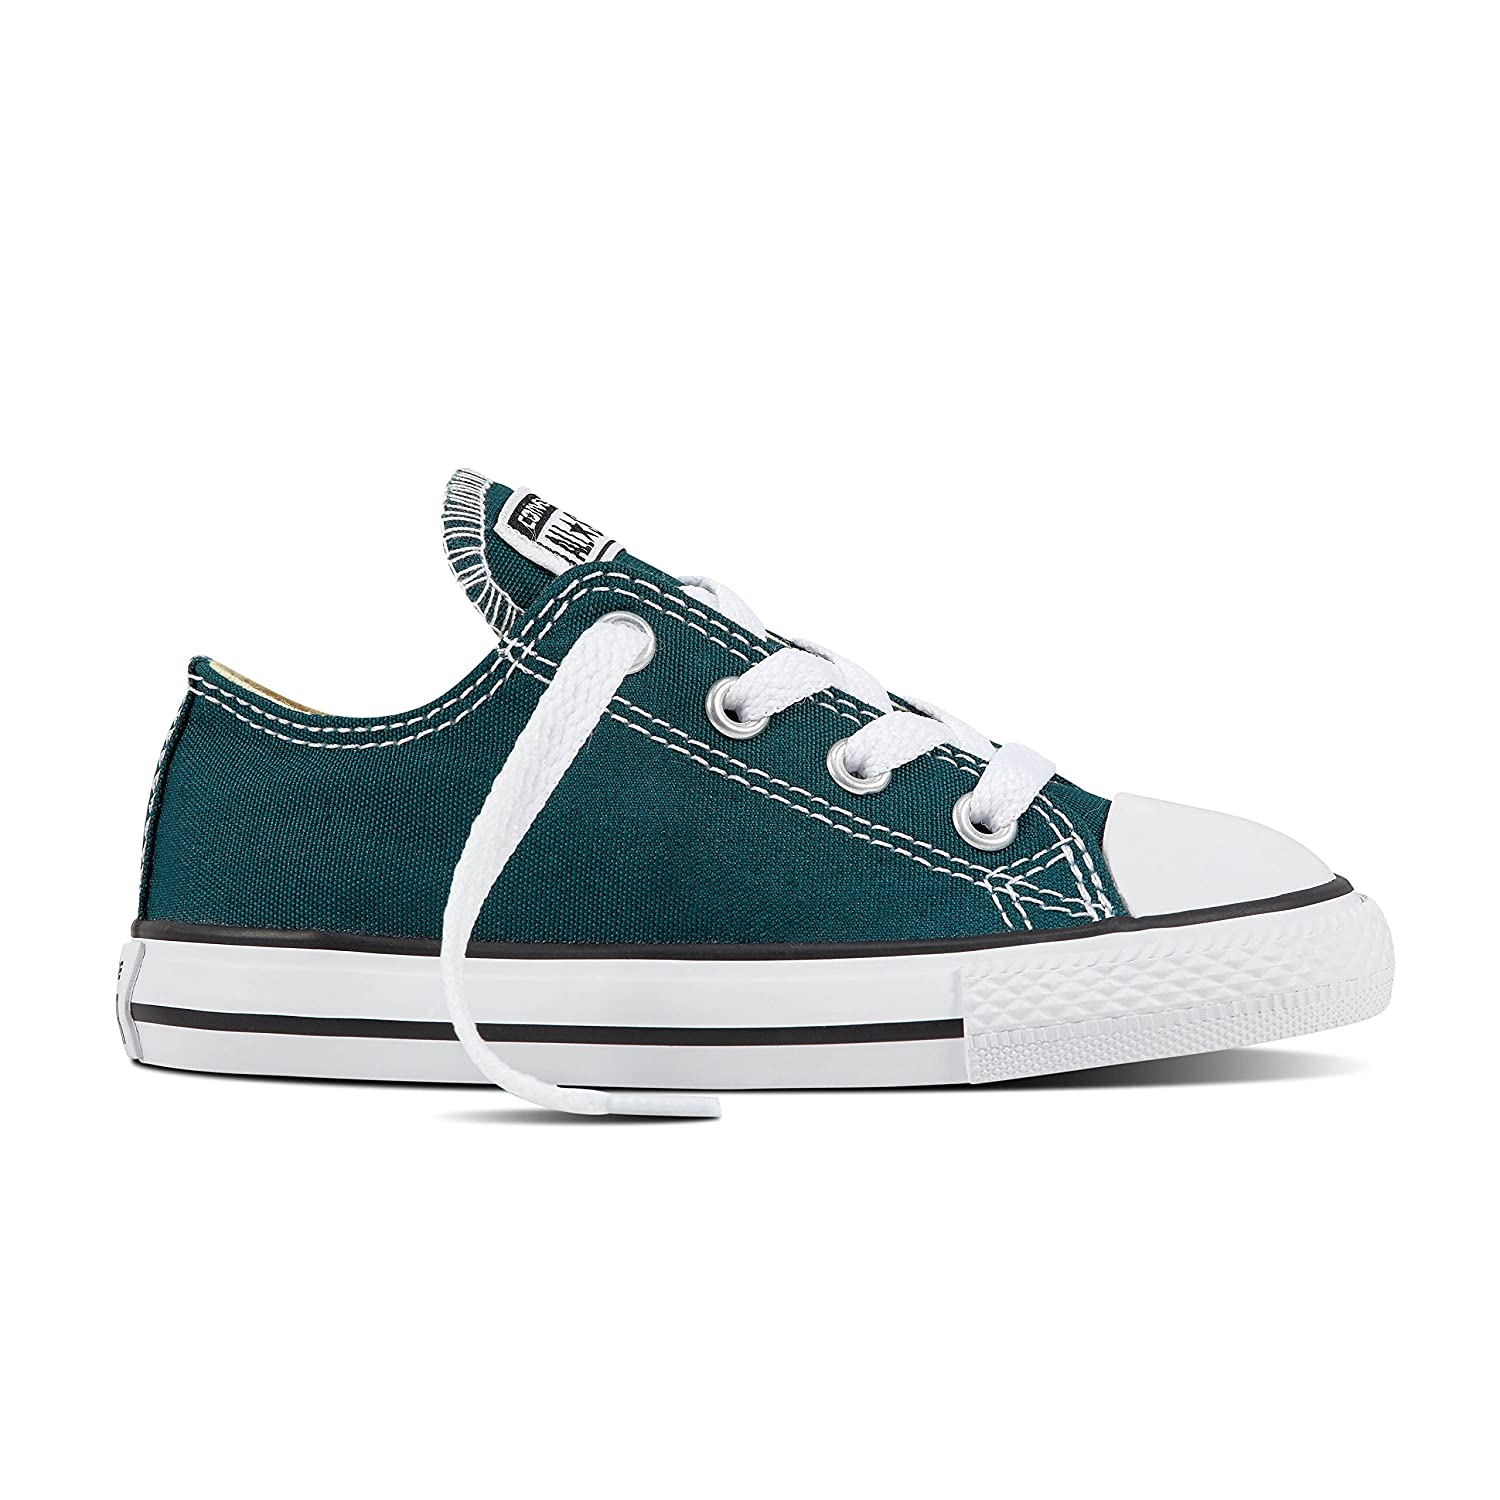 Dark Atmoic Teal Converse Unisex-Kinder CTAS-ox-Charcoal-Infant Fitnessschuhe